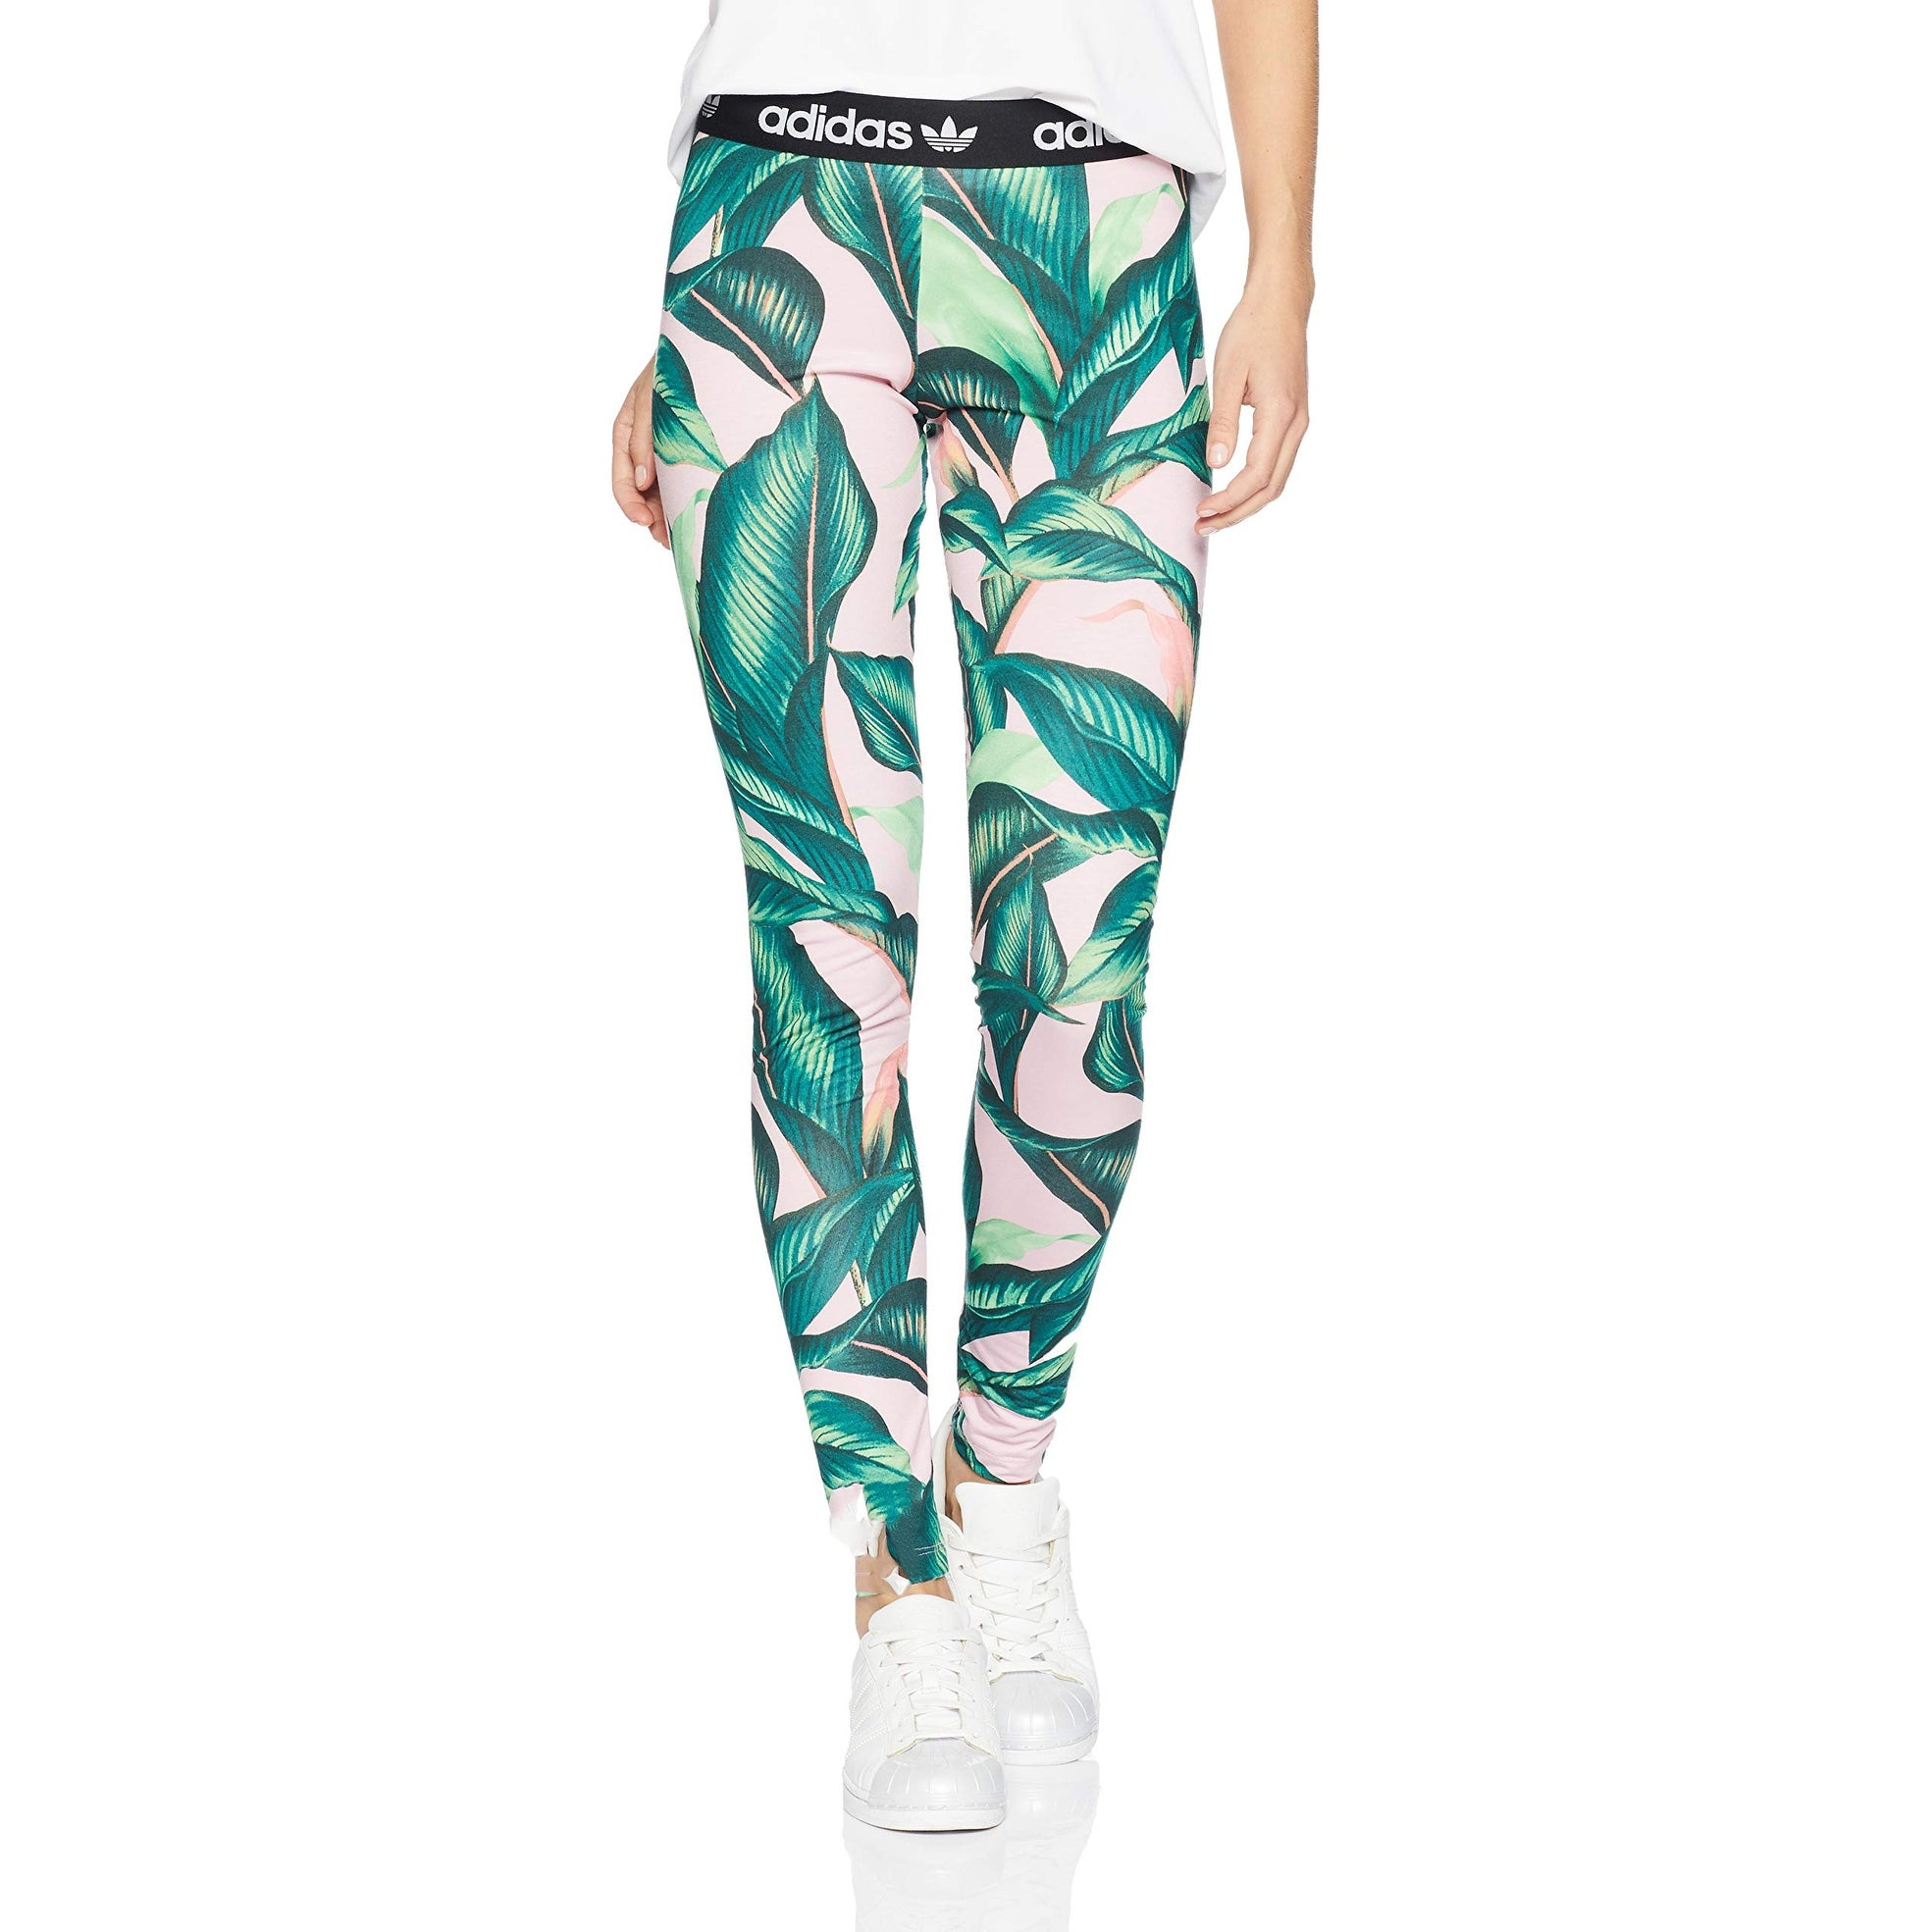 0fbc1f66186 Buy Adidas Leggings Online at Overstock | Our Best Pants Deals